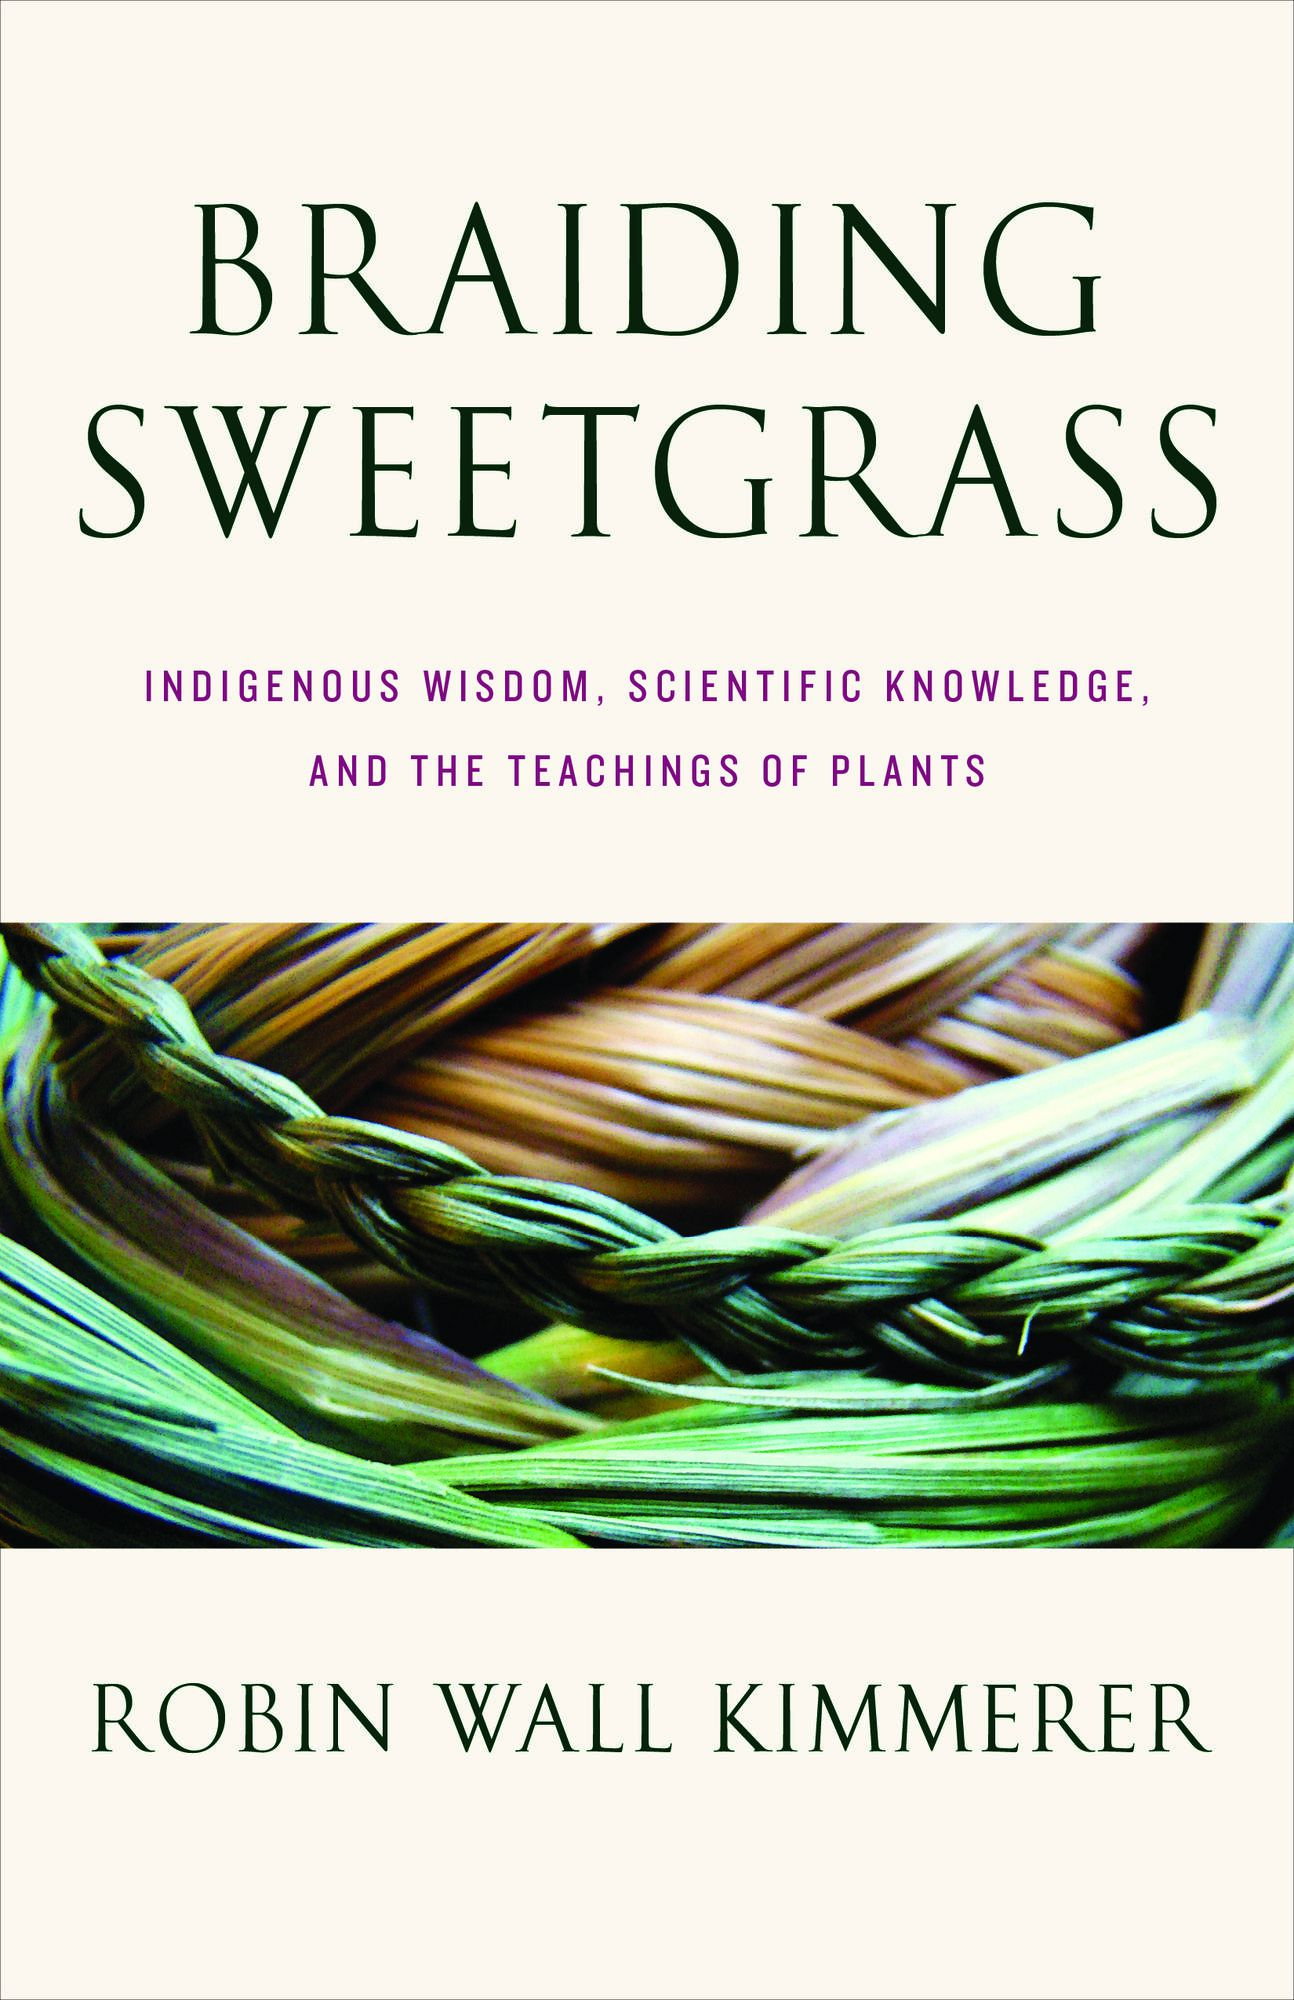 Braiding Sweetgrass: Indigenous Wisdom, Scientific Knowledge, and the Teachings of Plants by Robin Wall Kimmerer